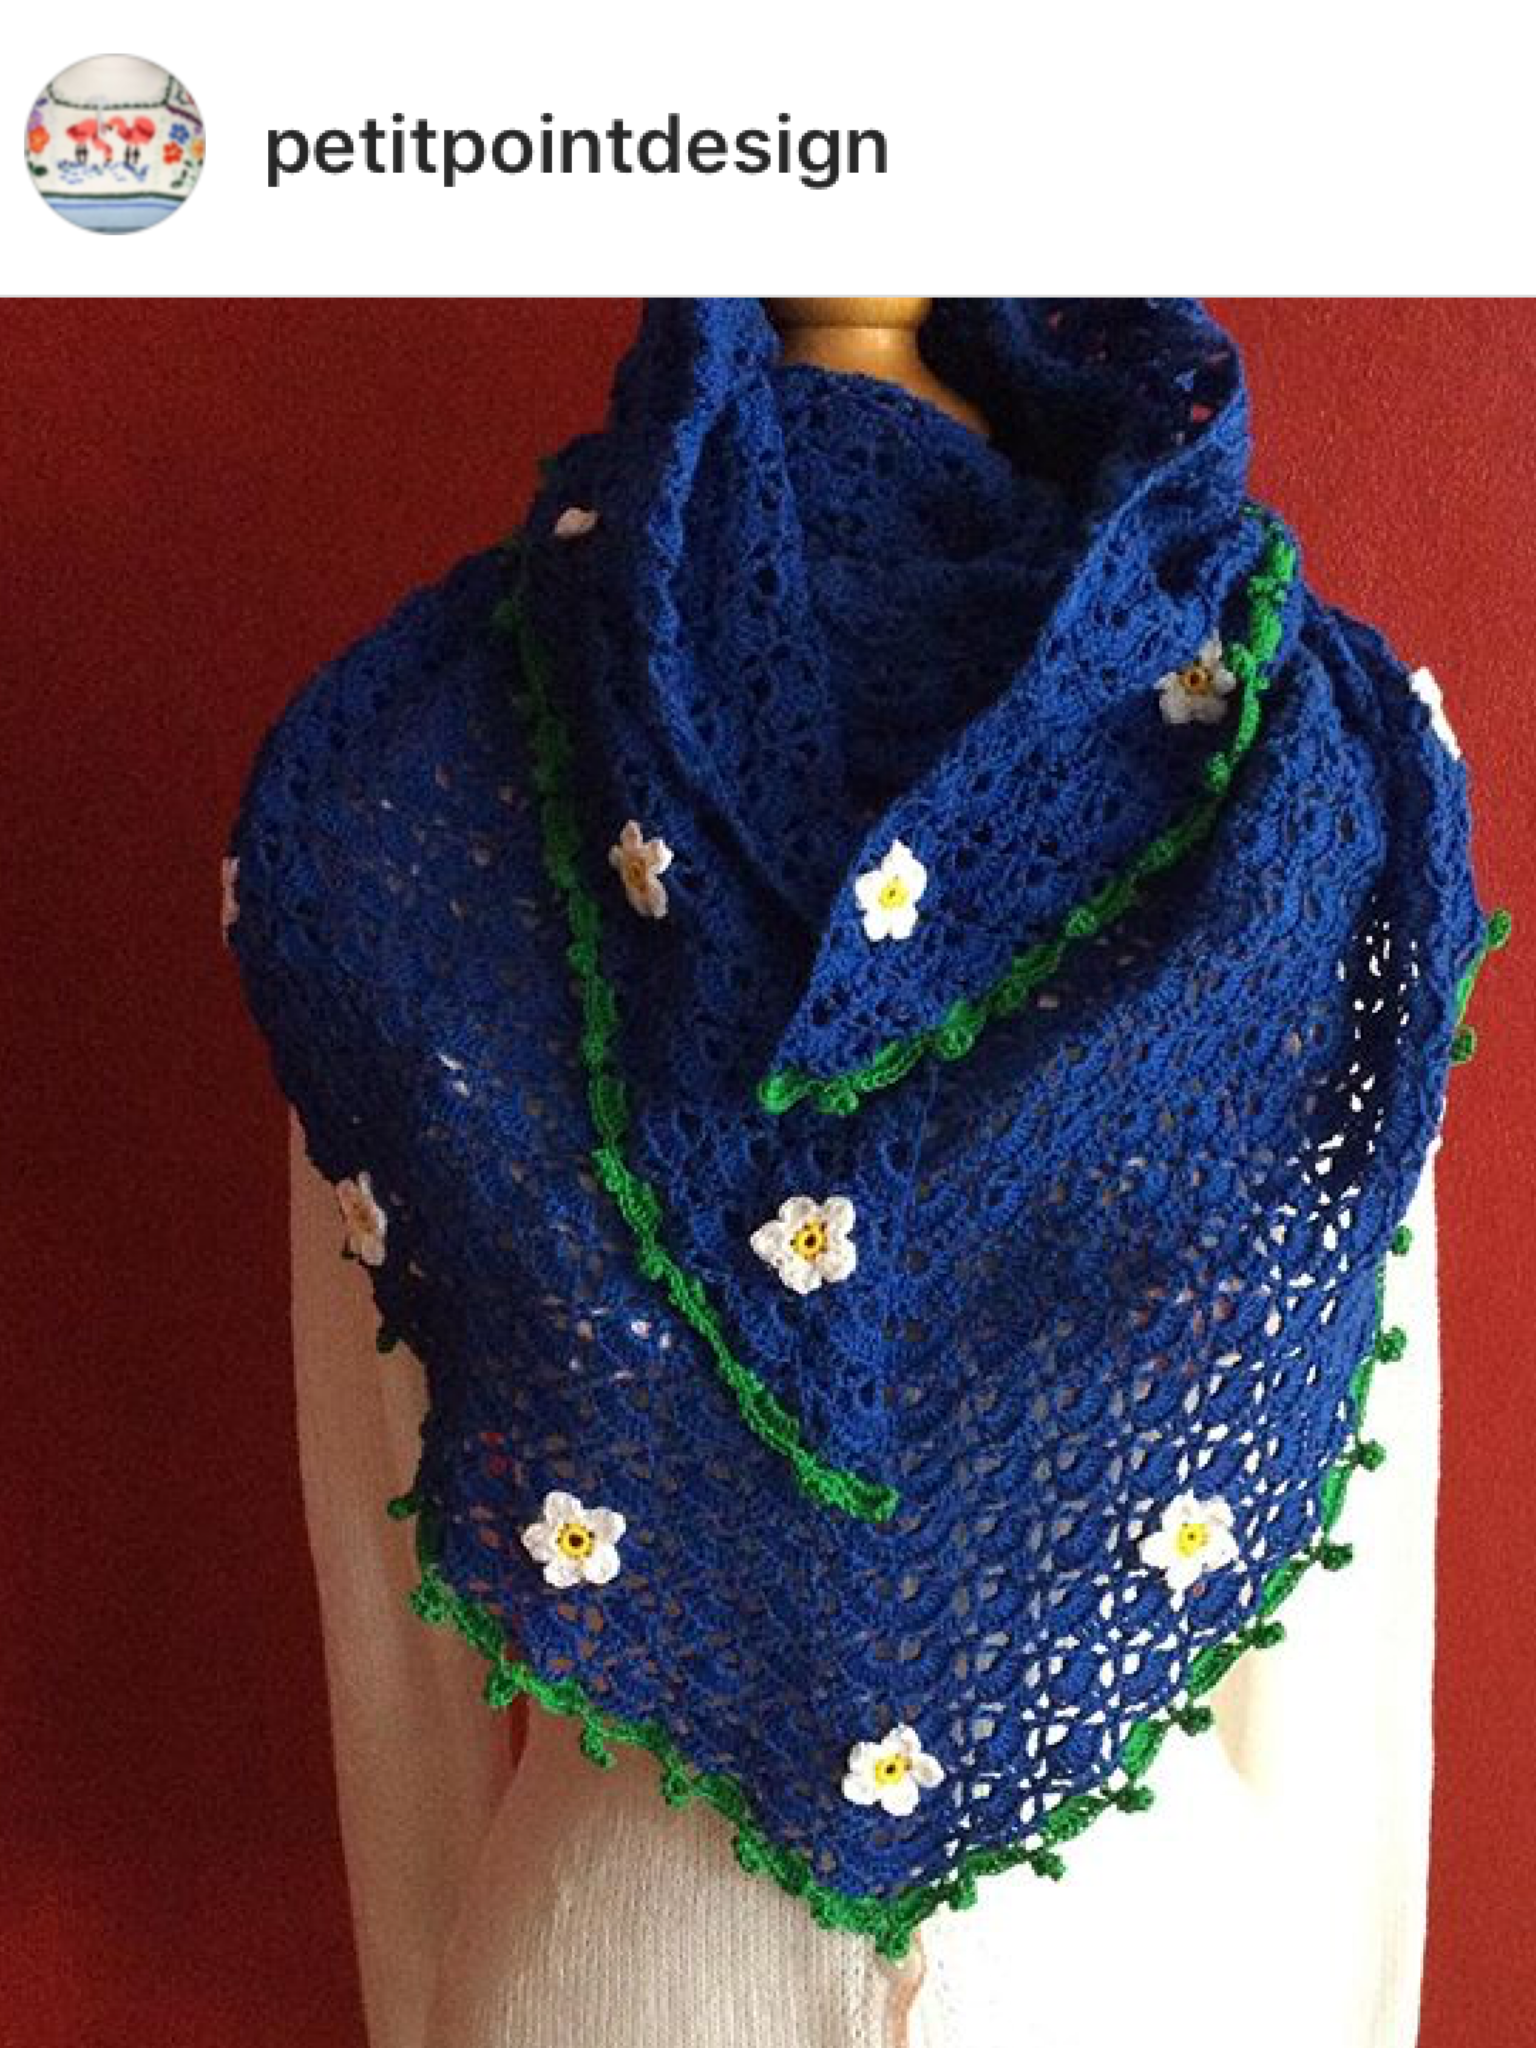 Pin de Petit Point Design en Gehaakte sjaals crochet shawls ...